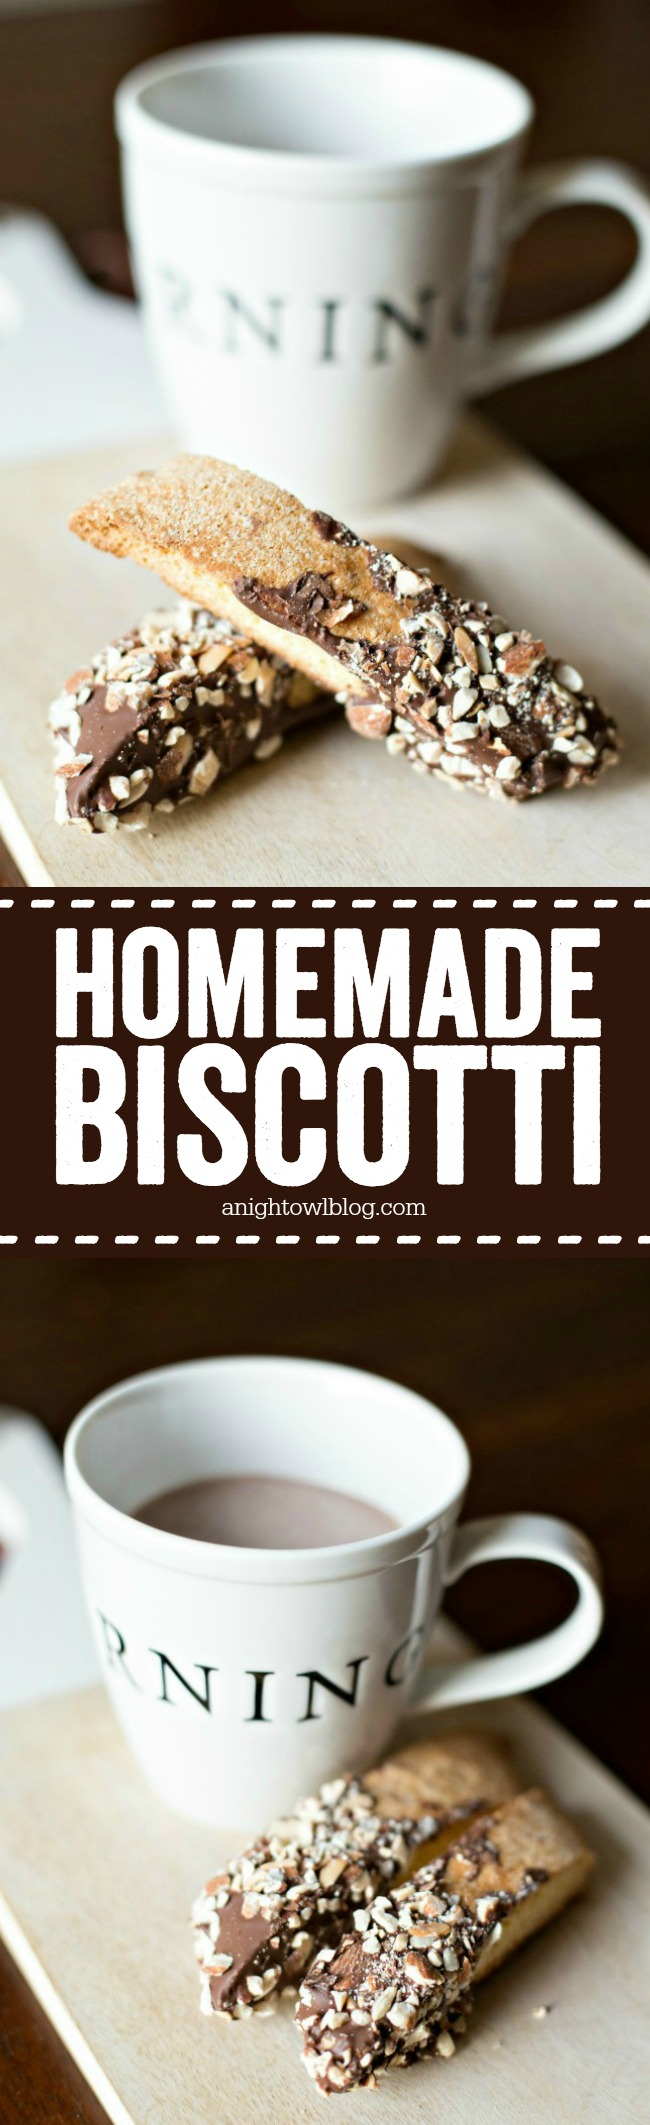 Perfect with your morning coffee, this Homemade Biscotti is easy to make and delicious!